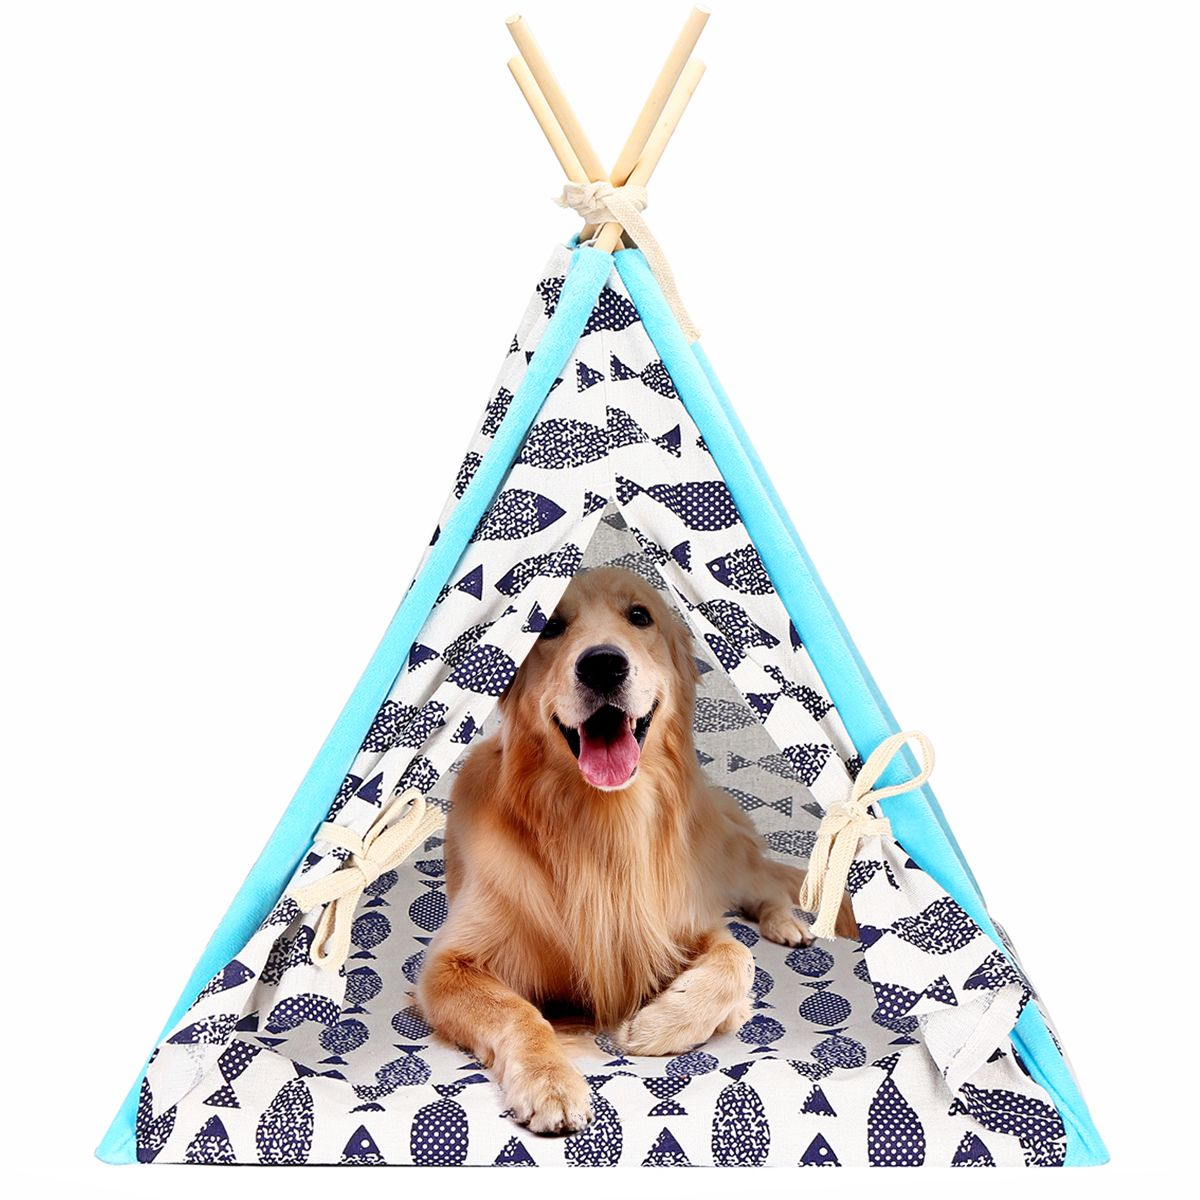 Pet Teepee Tent for Tiny Dogs Puppy Cat Bed Portable Print Fish/Paris/Forest Canvas Dog Cute House Indoor Outdoor Tent Small Medium Pet Teepee with Floor Mat 24inch -   18 diy Dog tent ideas